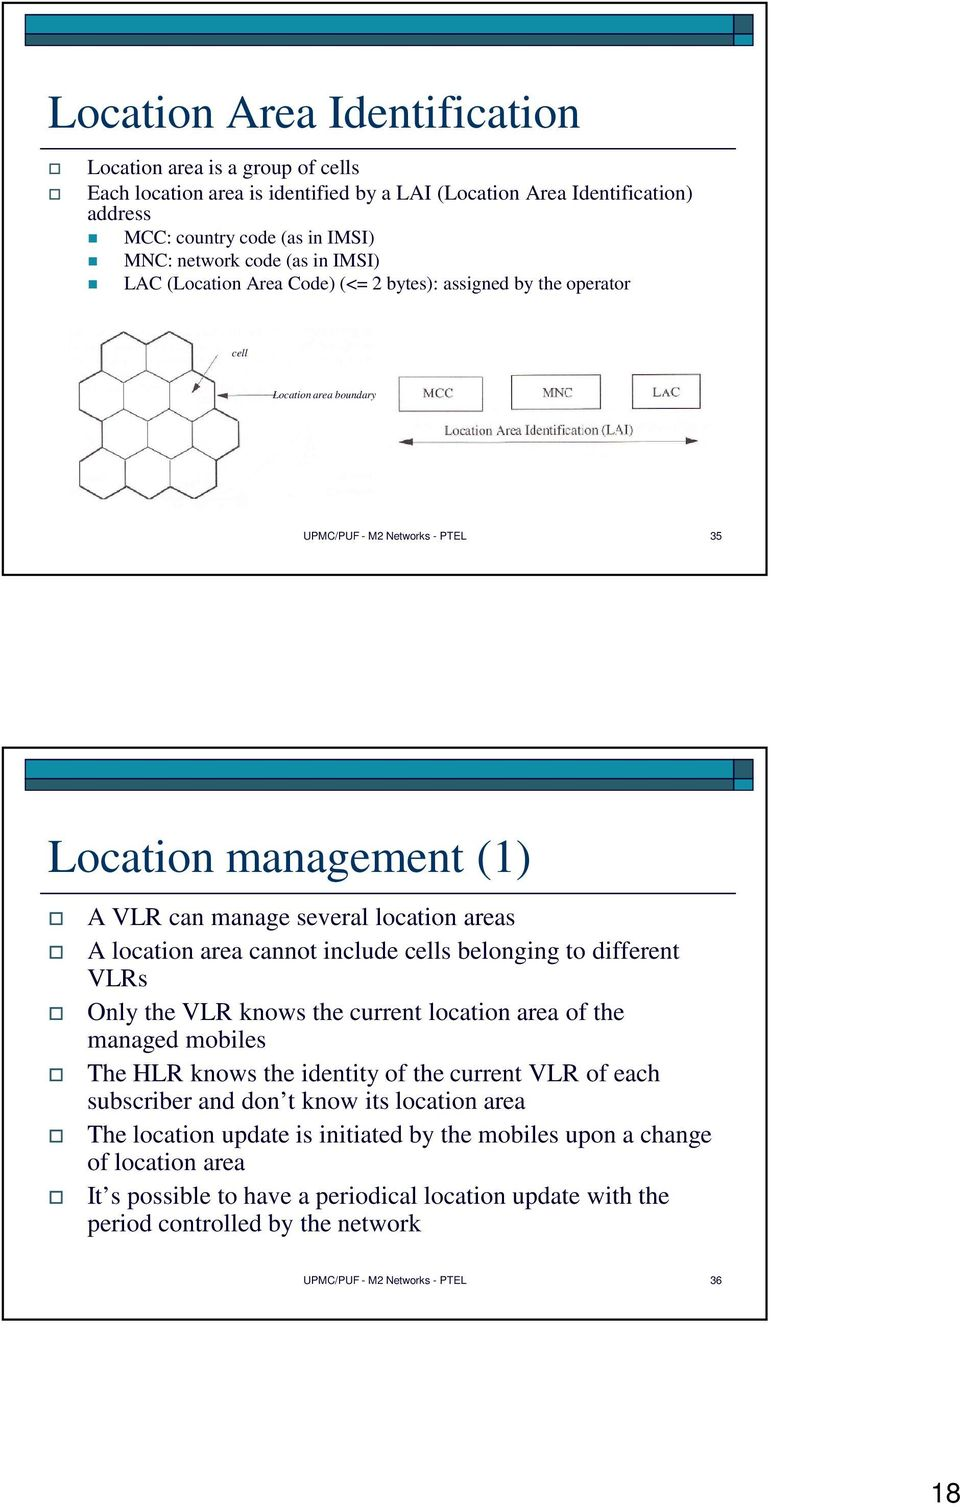 location area cannot include cells belonging to different VLRs Only the VLR knows the current location area of the managed mobiles The HLR knows the identity of the current VLR of each subscriber and